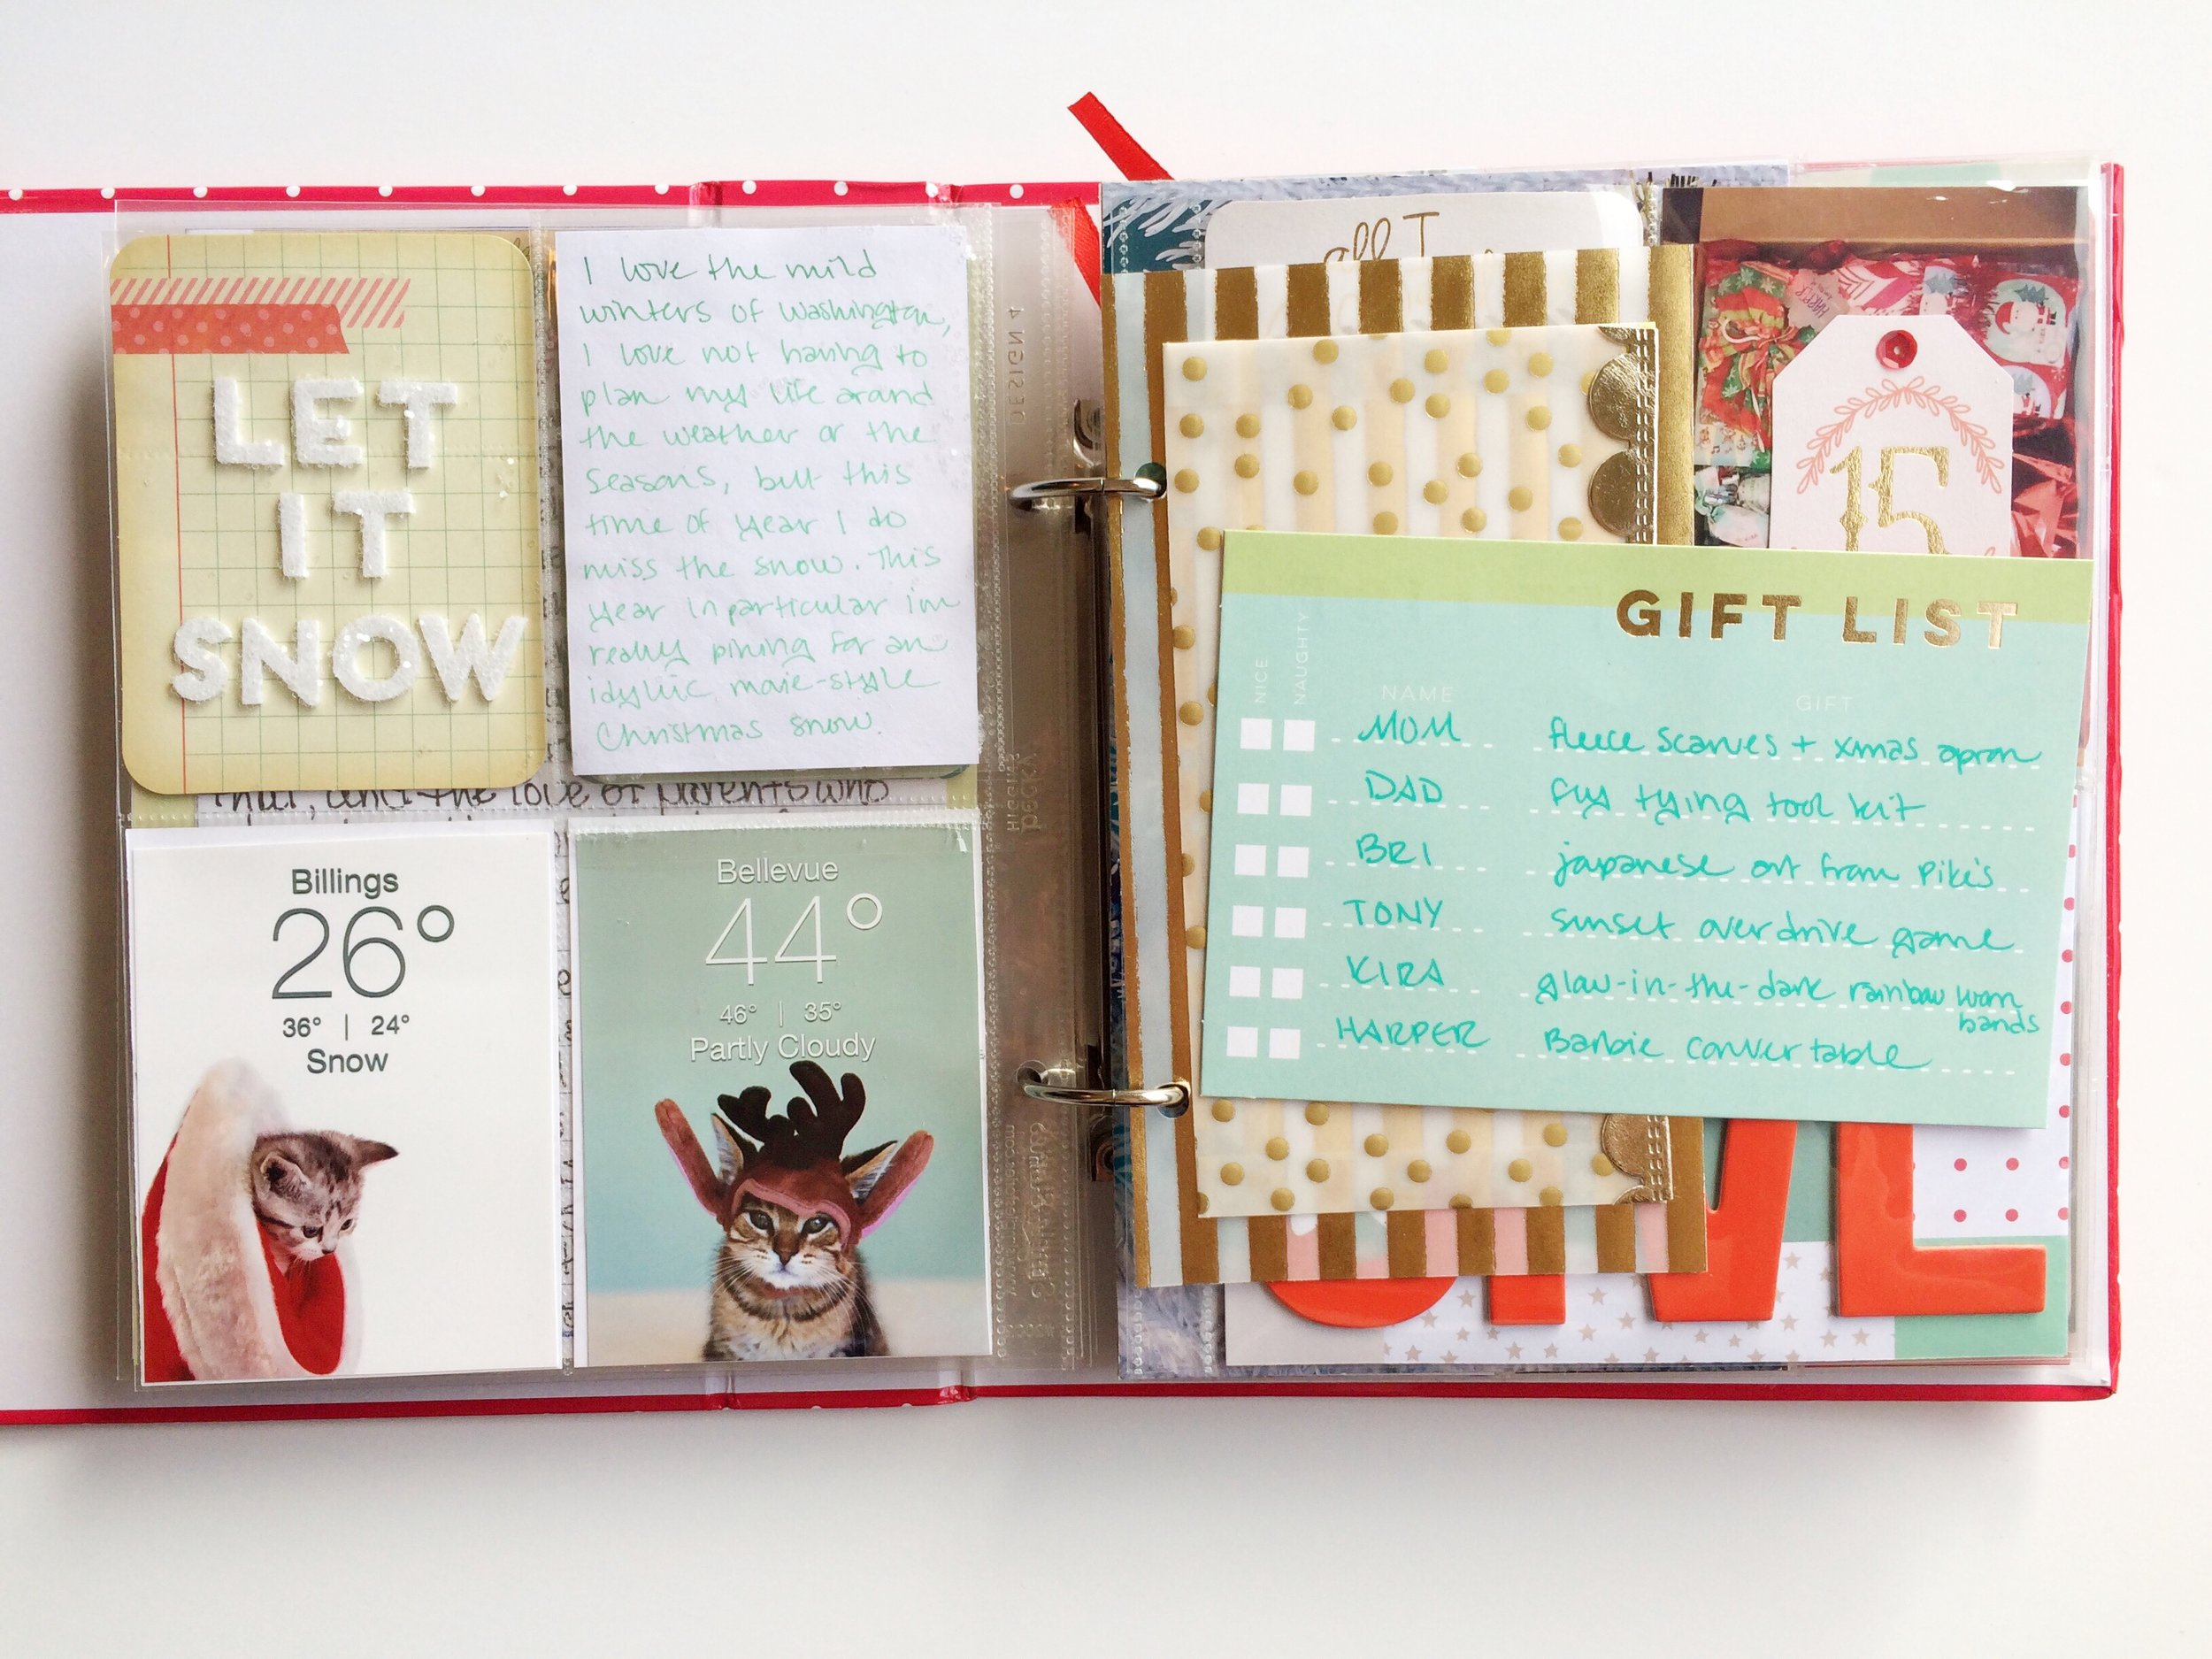 I also added another flip up pocket to journal under. The glitter on the front side is glued on for the most part, but being able to seal it into a contained pocket is a nice assurance that the whole album wont be covered in glitter with one wrong move. I also used a Studio Calico 4x6 journal card to make a list of the bigger gifts I sent to my family. The flip side is the same thing but with gifts for my boyfriend and bestie.